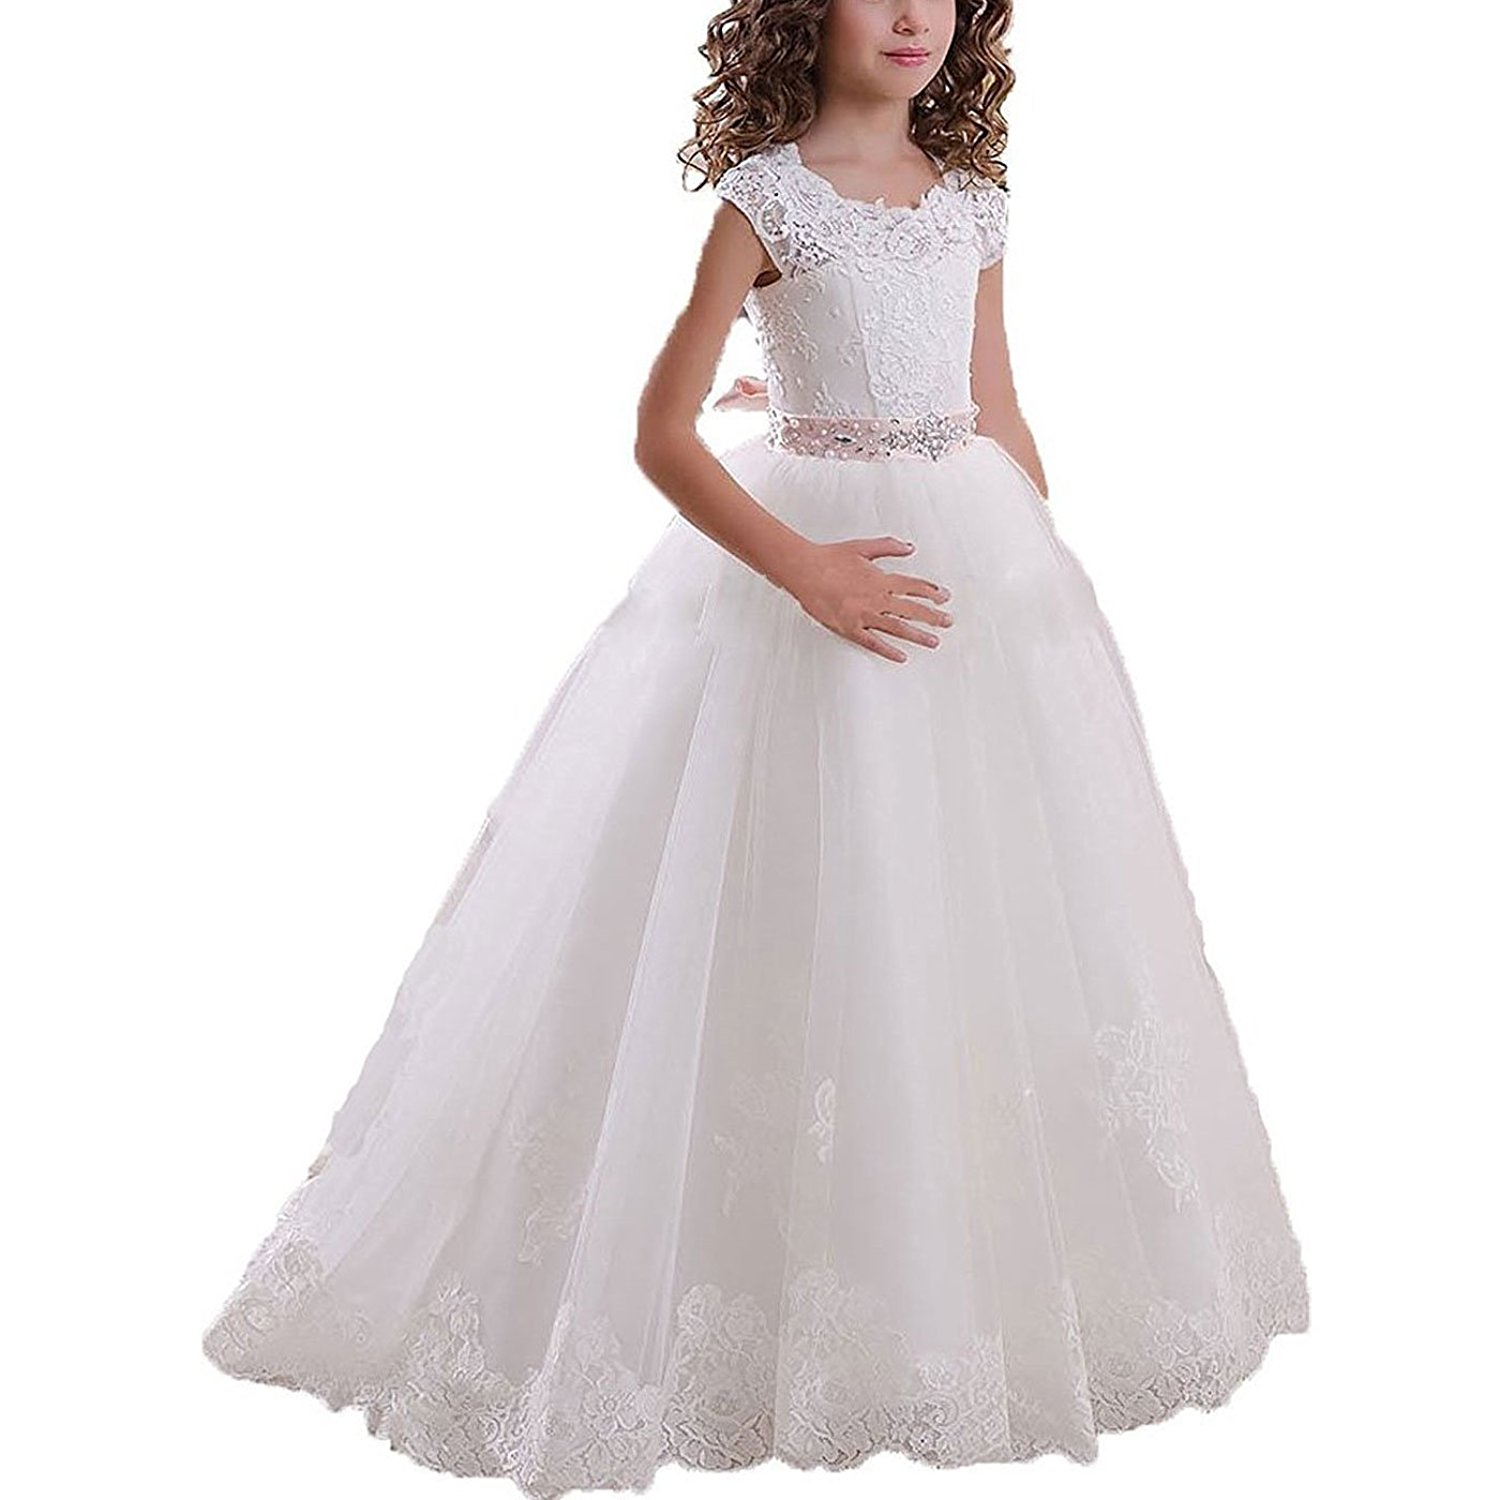 97fc74df24e Get Quotations · PANLIFE Vintage White Ivory Lace Flower Girl Dresses First  Communion Party Gown